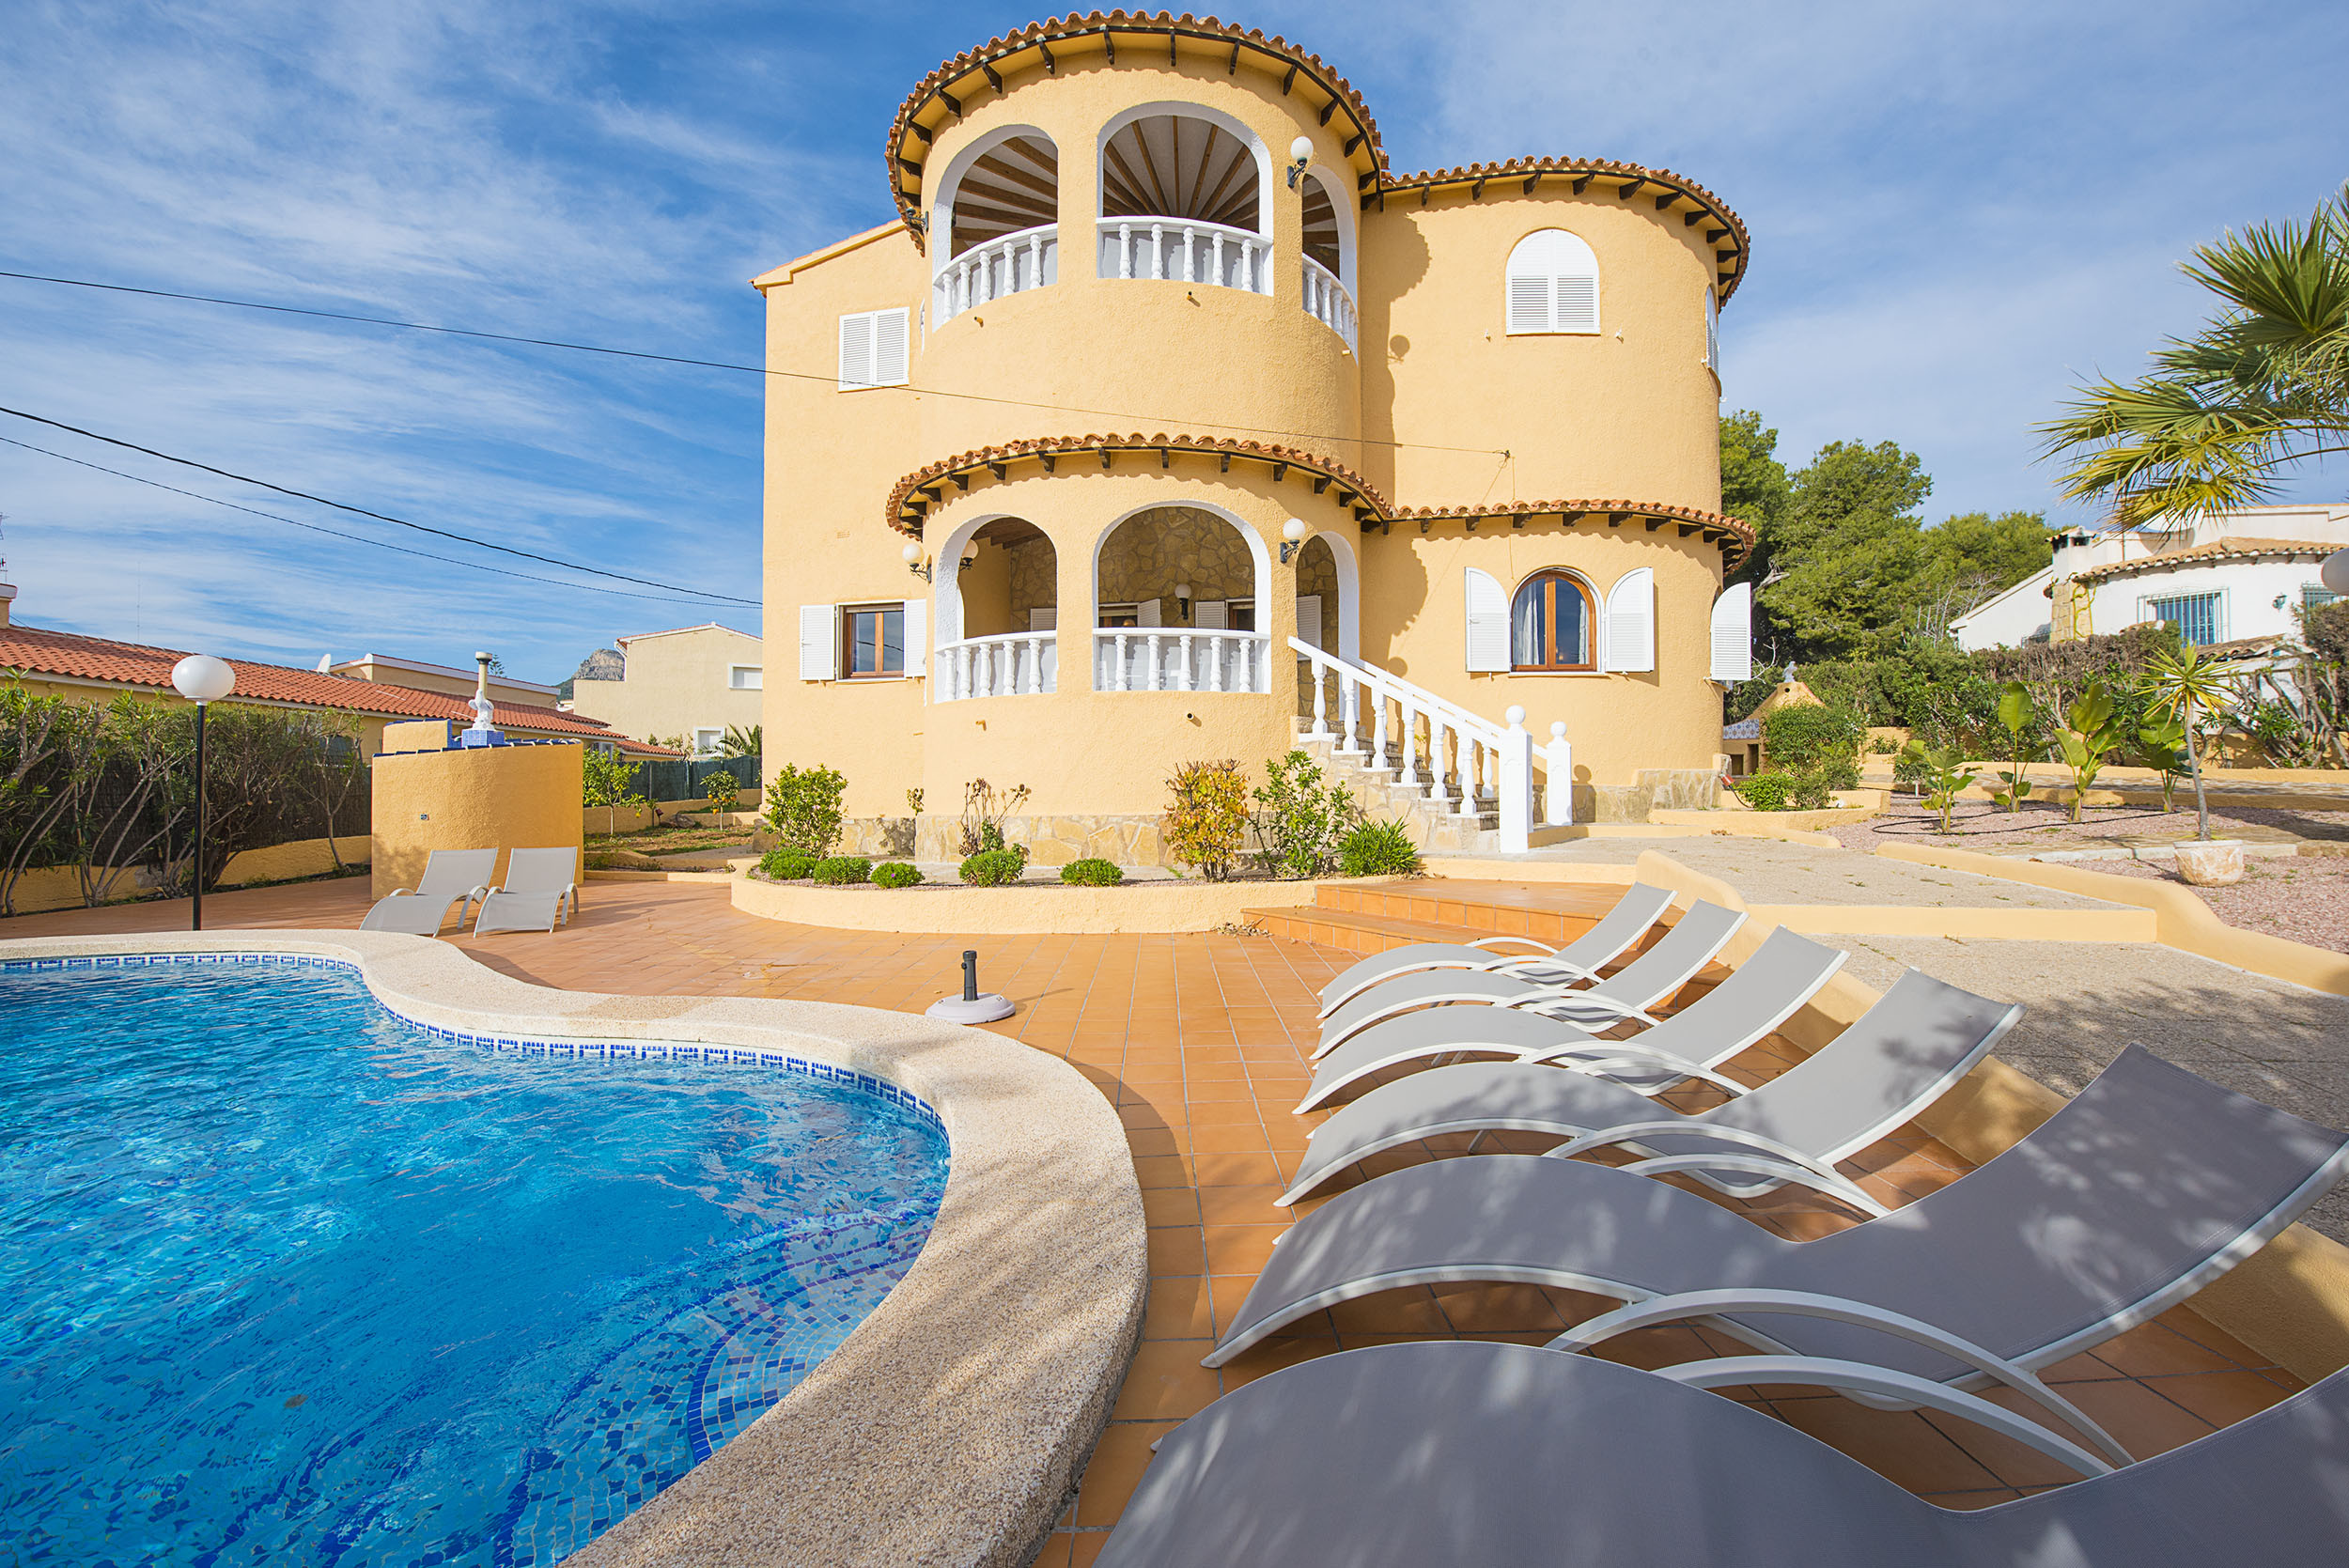 Villa Heather,Calpe,Costa Blanca #2